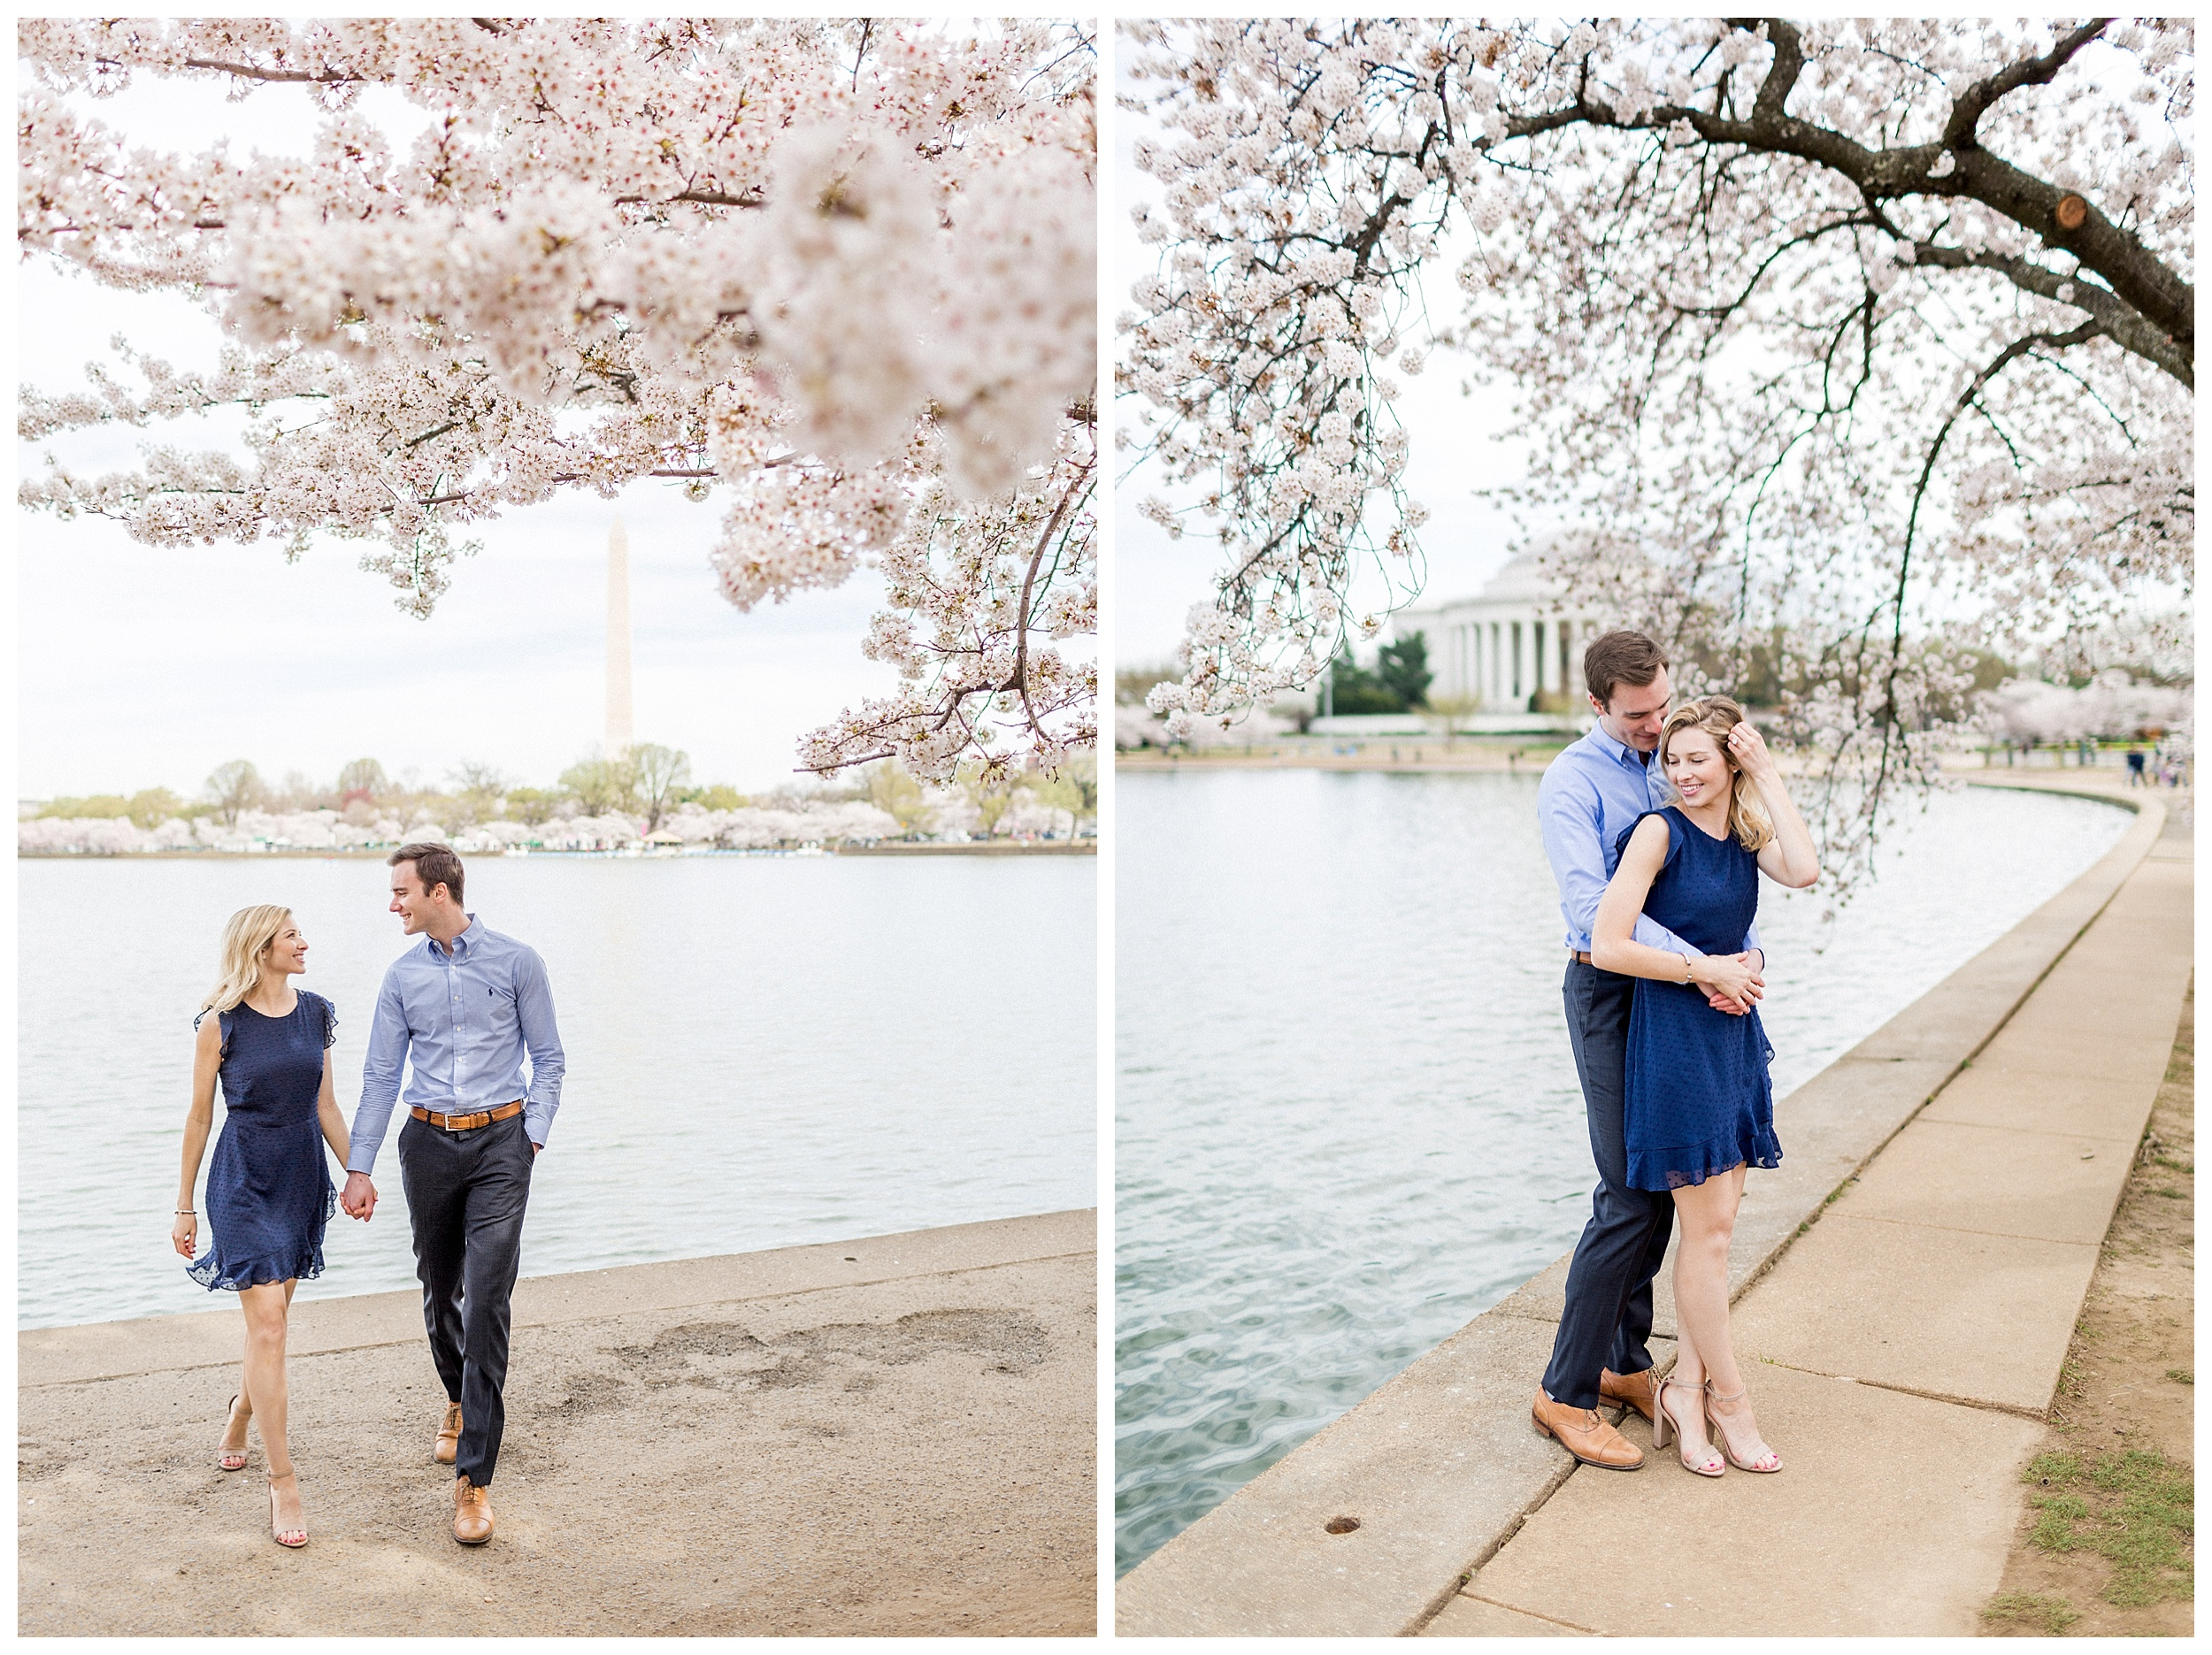 District of Columbia Cherry Blossom Engagement Session_0046.jpg